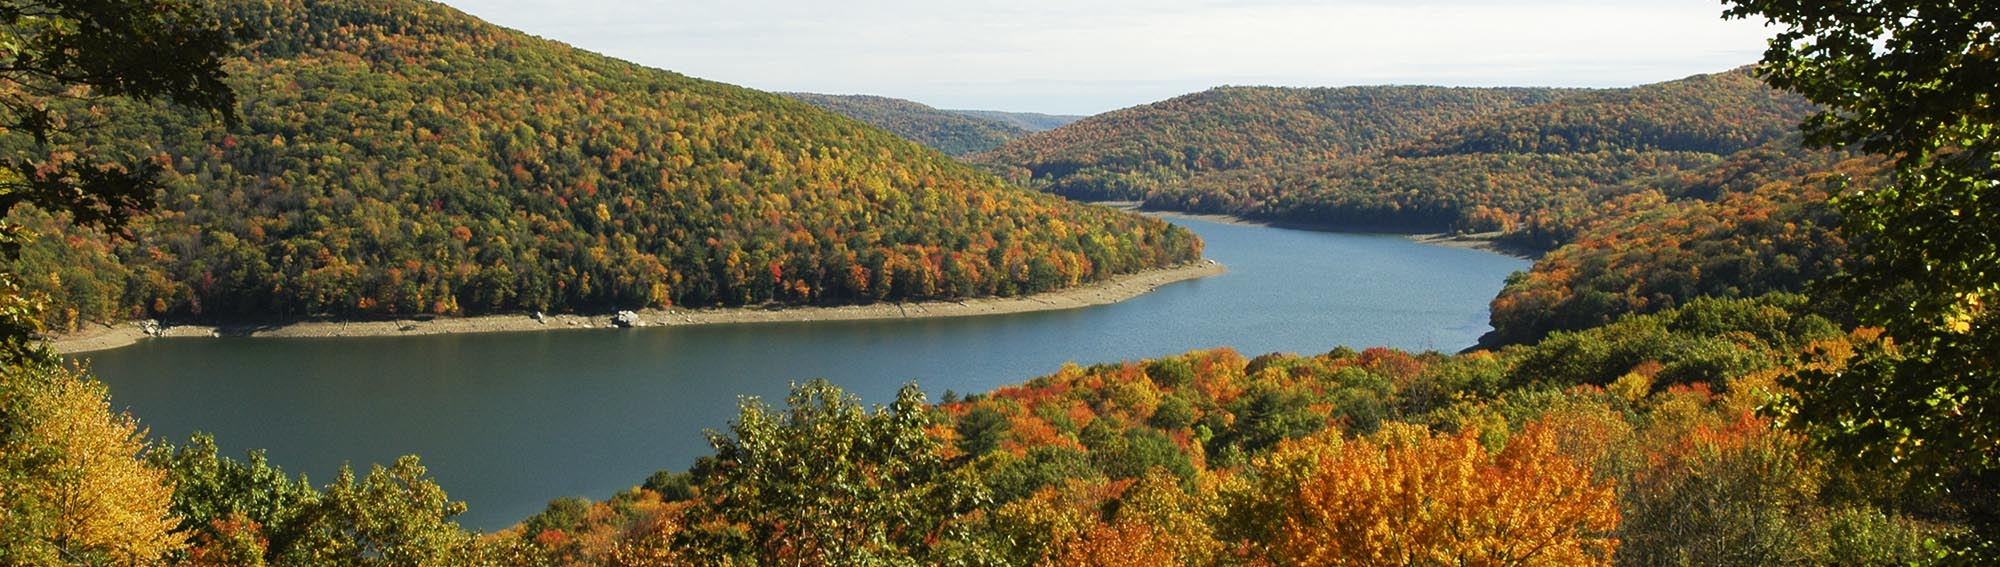 Overlook of Allegheny Reservoir